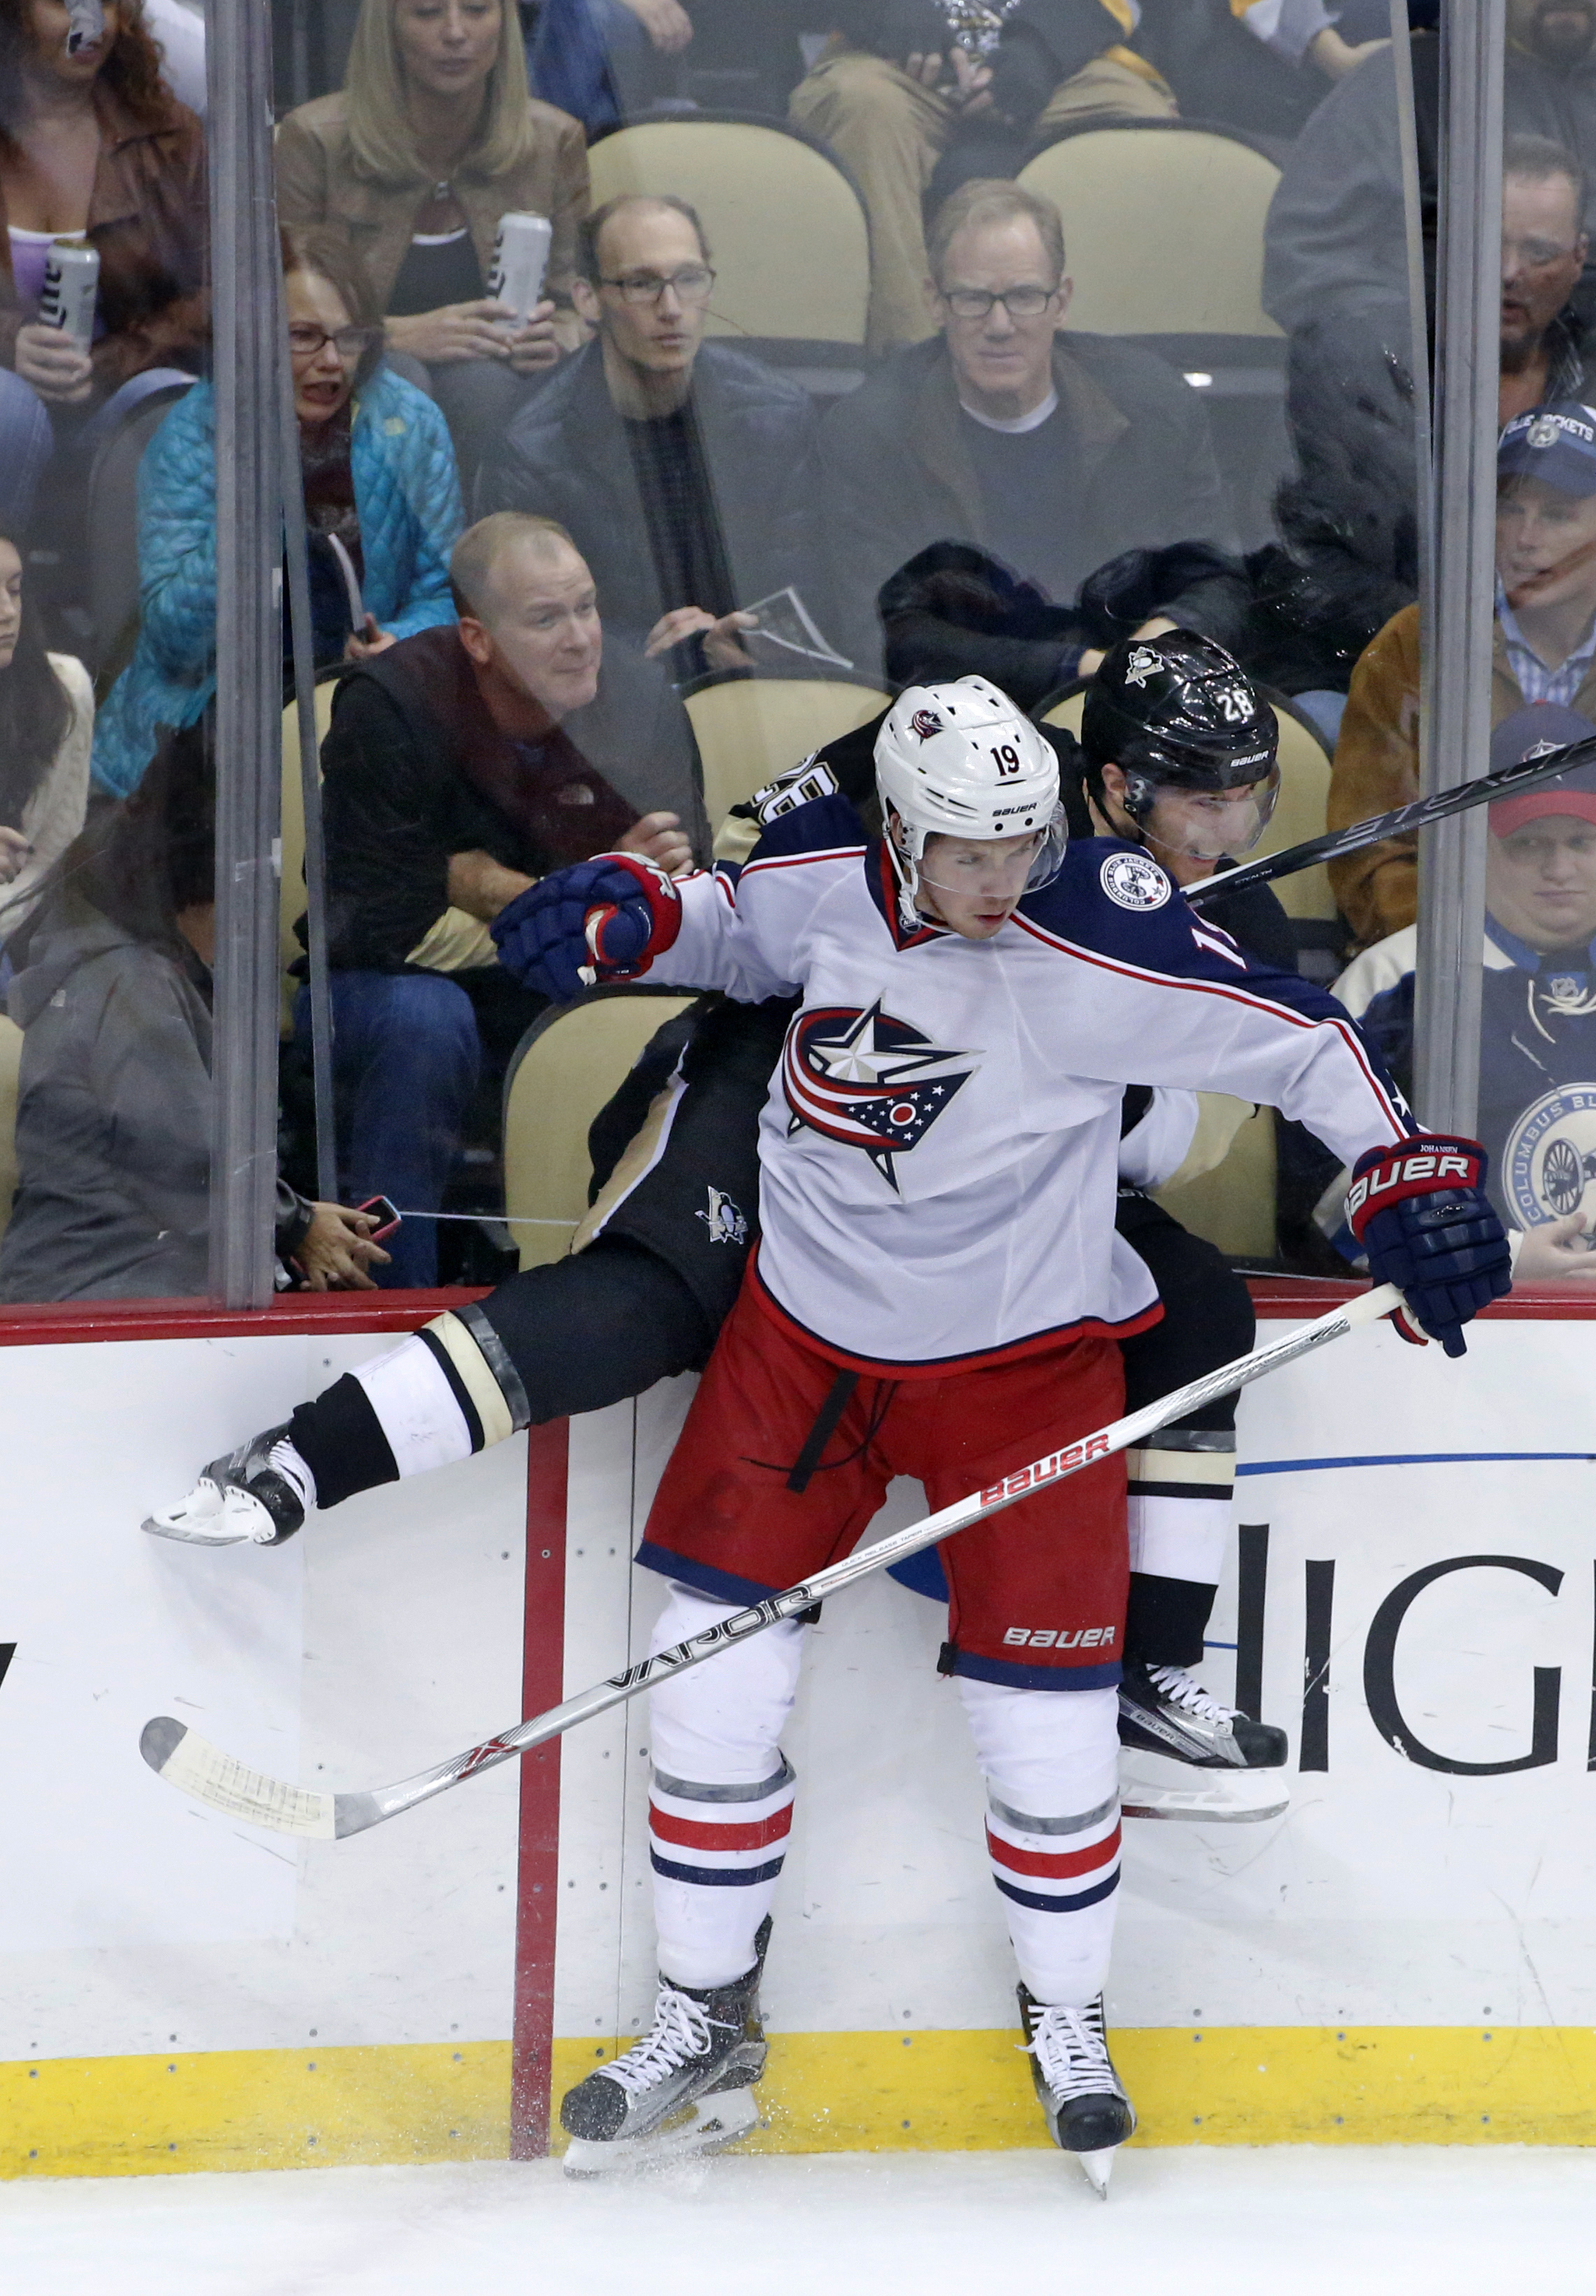 Columbus Blue Jackets' Ryan Johansen (19) checks Pittsburgh Penguins' Ian Cole (28), dislodging the glass into the seats during the first period of an NHL hockey game in Pittsburgh, Monday, Dec. 21, 2015. There were no apparent injuries. (AP Photo/Gene J.